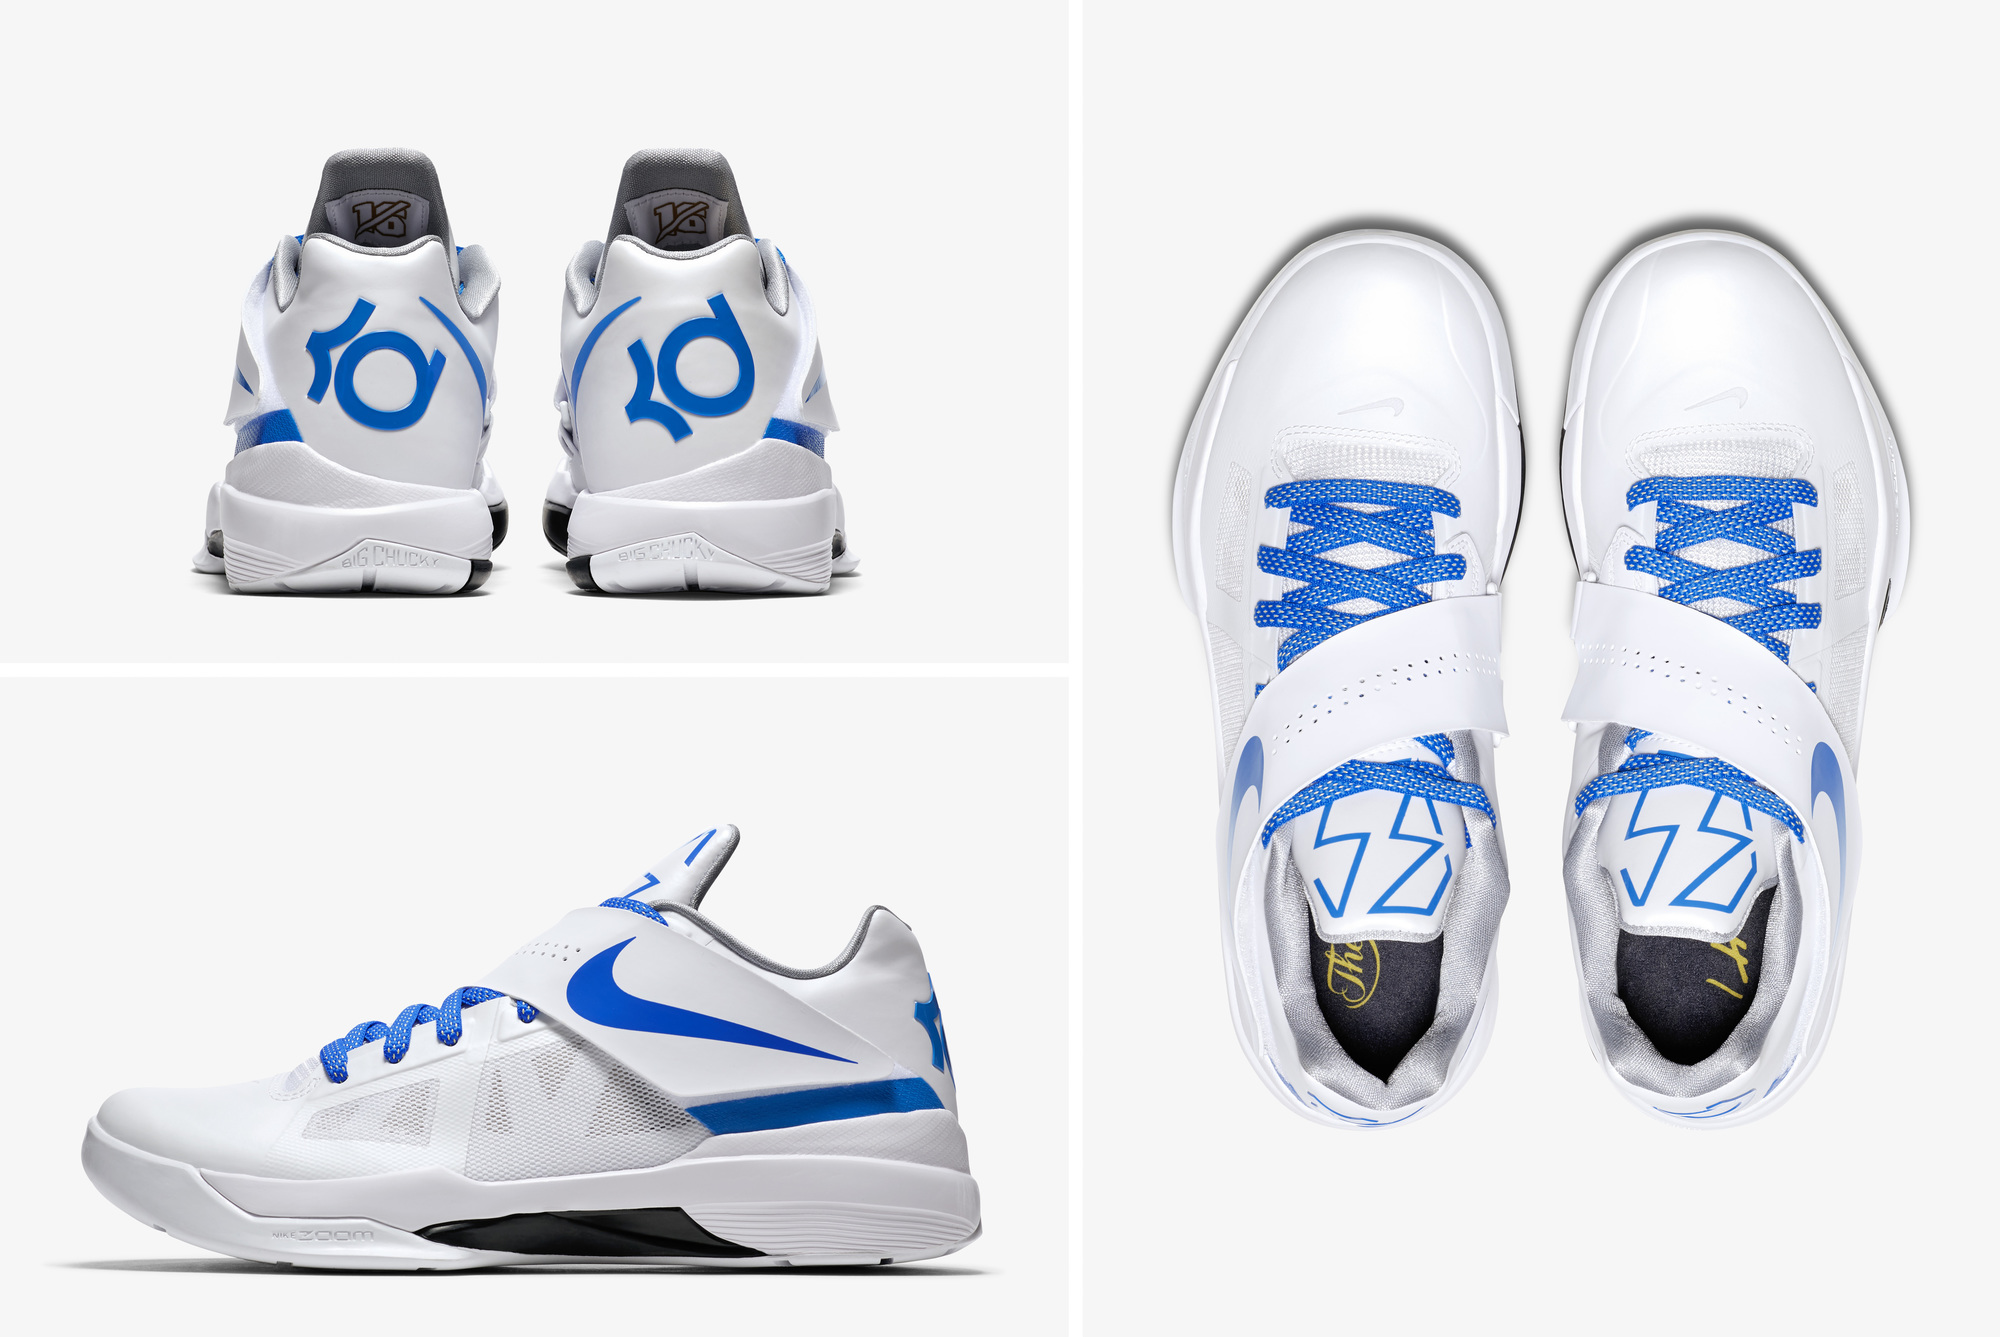 Nike Zoom KD 4 Battle Tested kevin durant